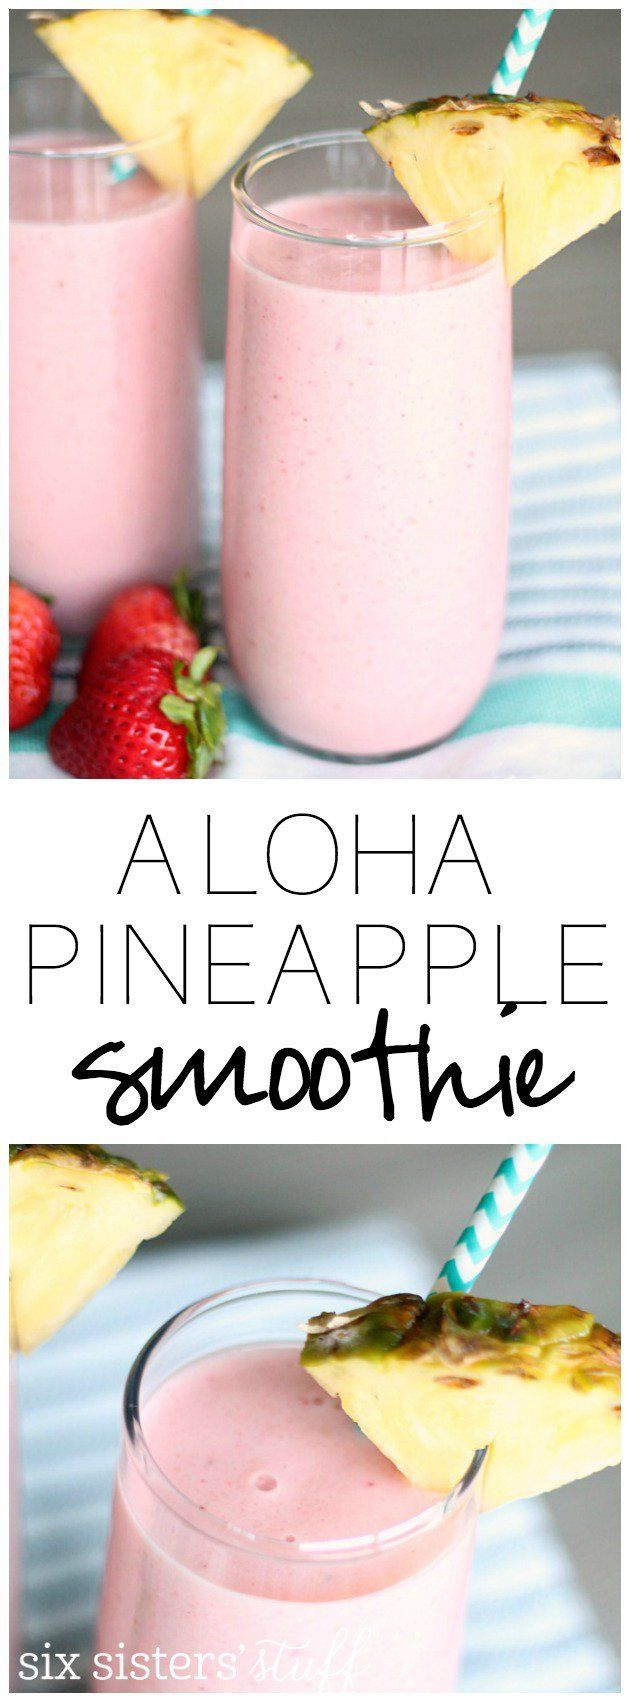 Copycat Jamba Juice Aloha Pineapple Smoothie from SixSistersStuff.com | Summer Drink Recipes | Healthy Snack | Kid Approved Snacks